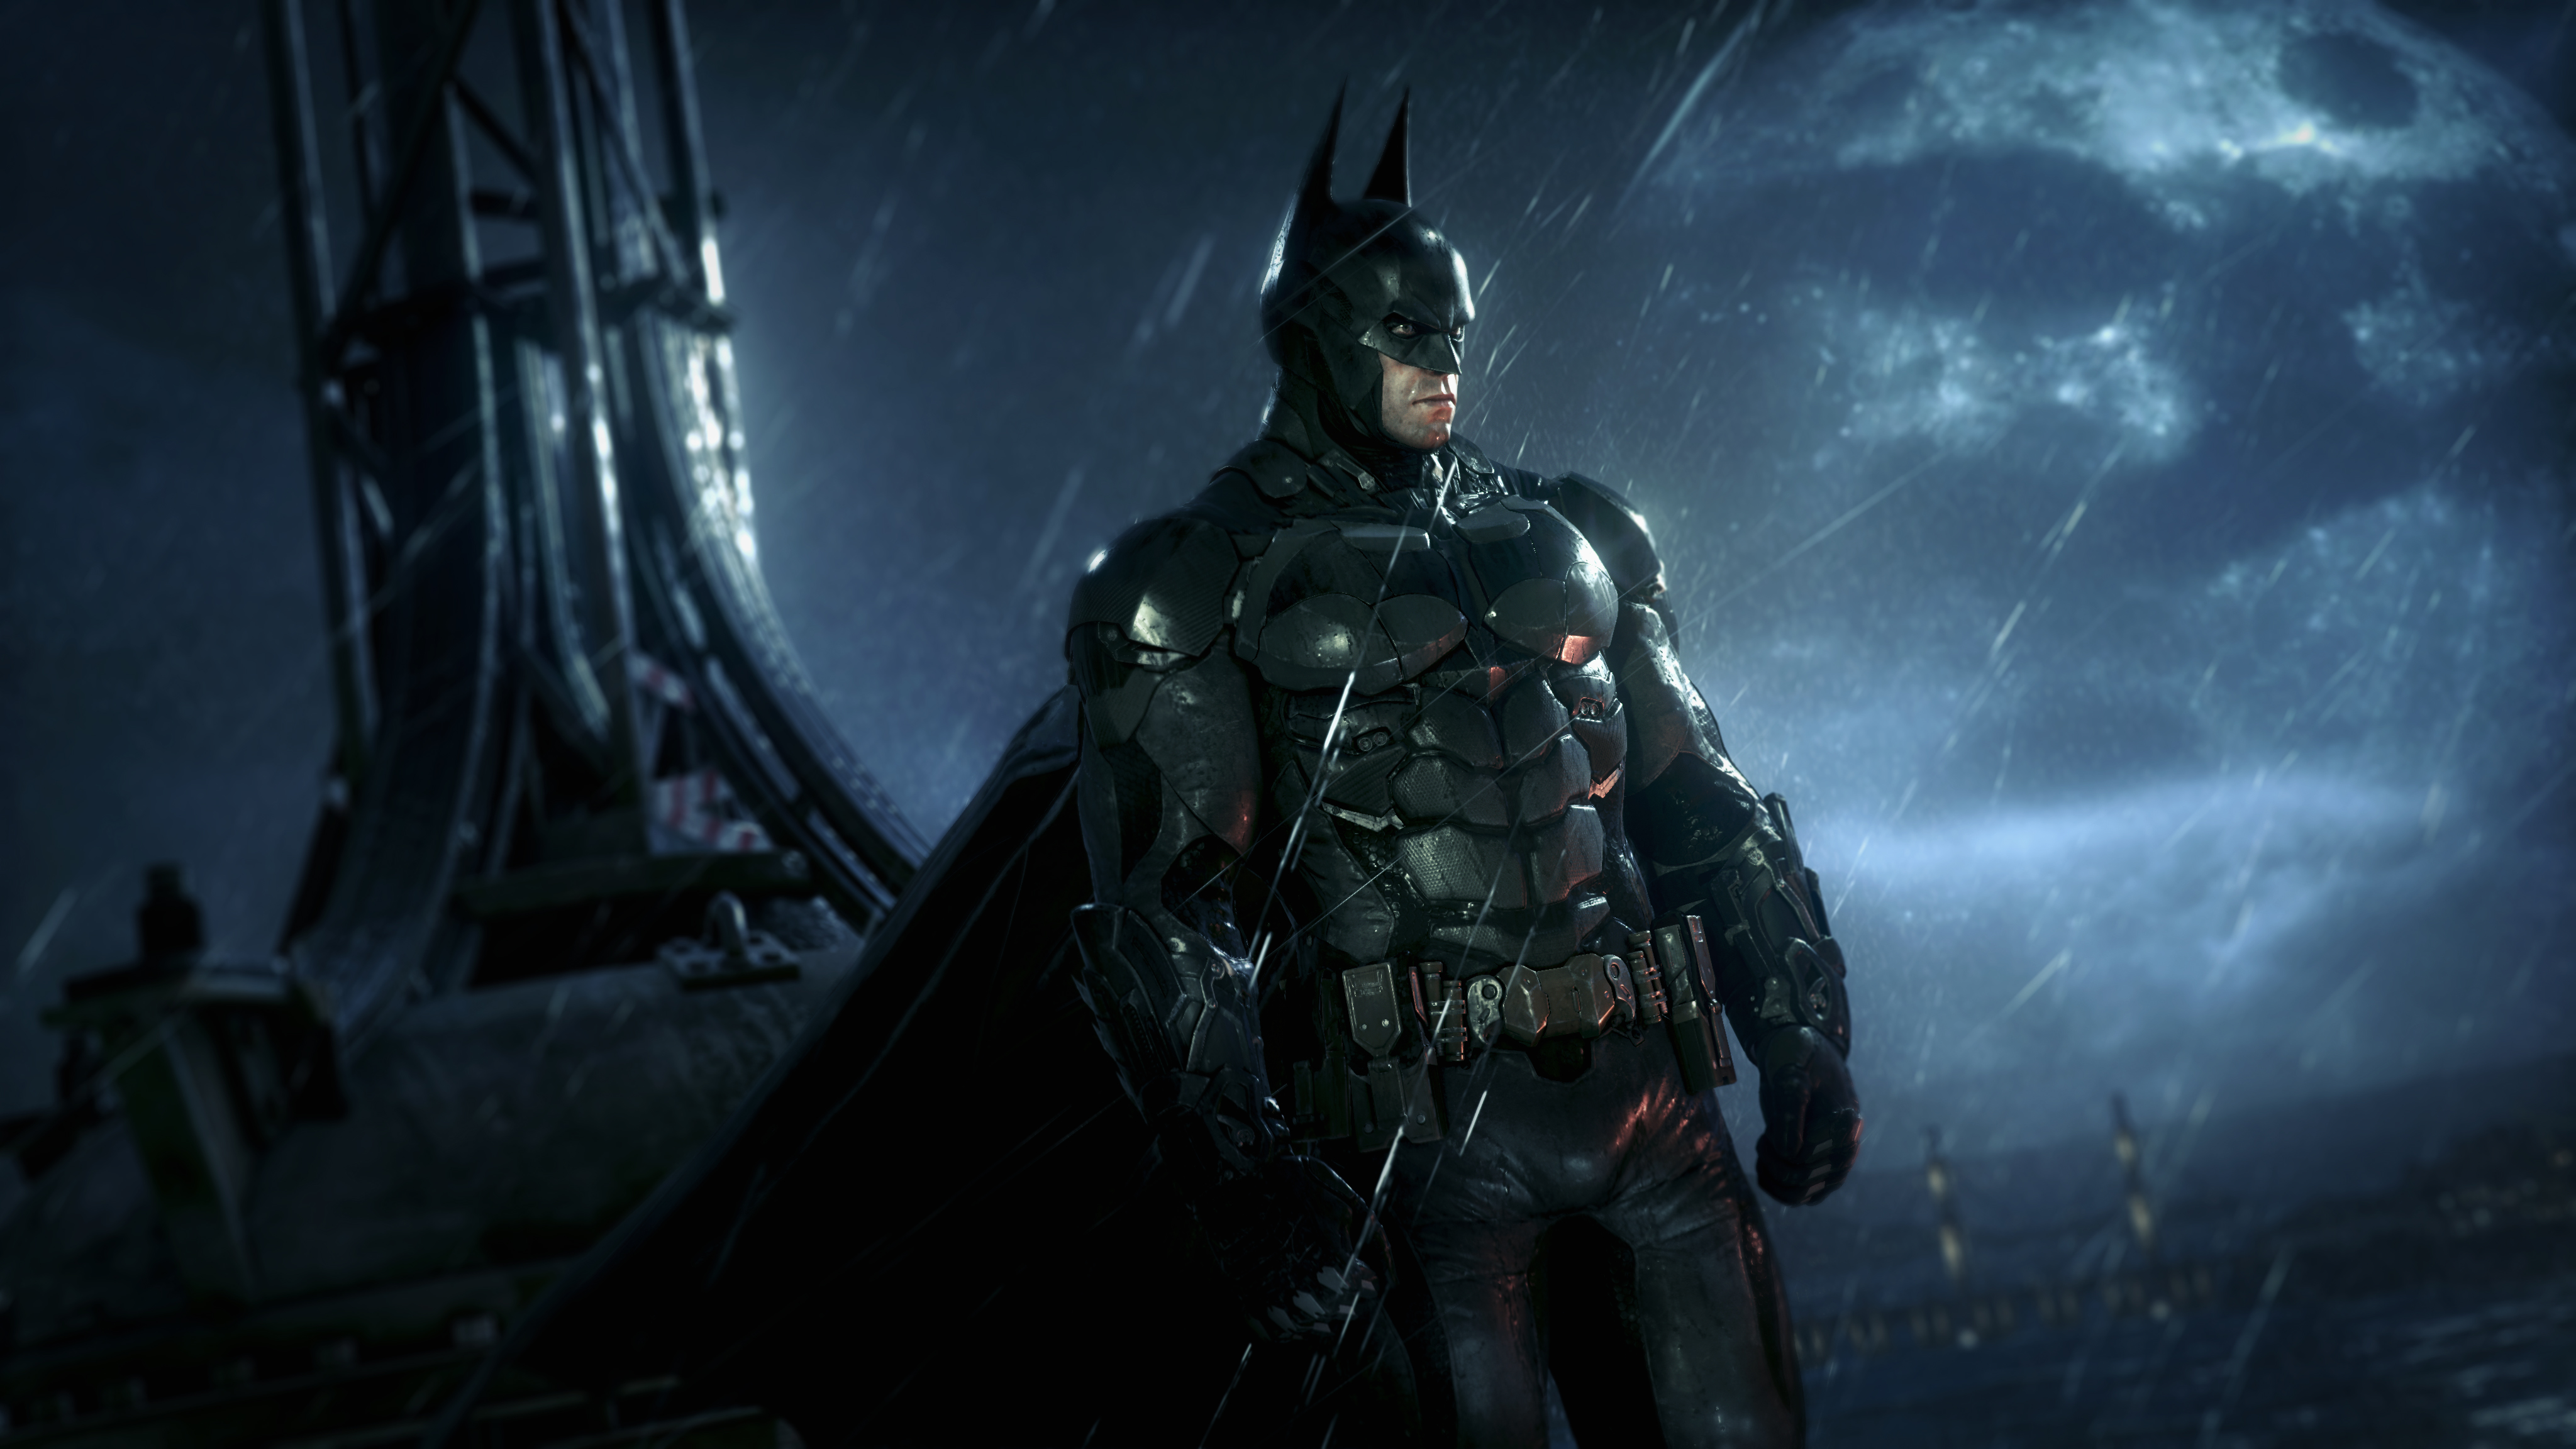 Batman: Arkham Knight - a disappointment but was it a bad game?